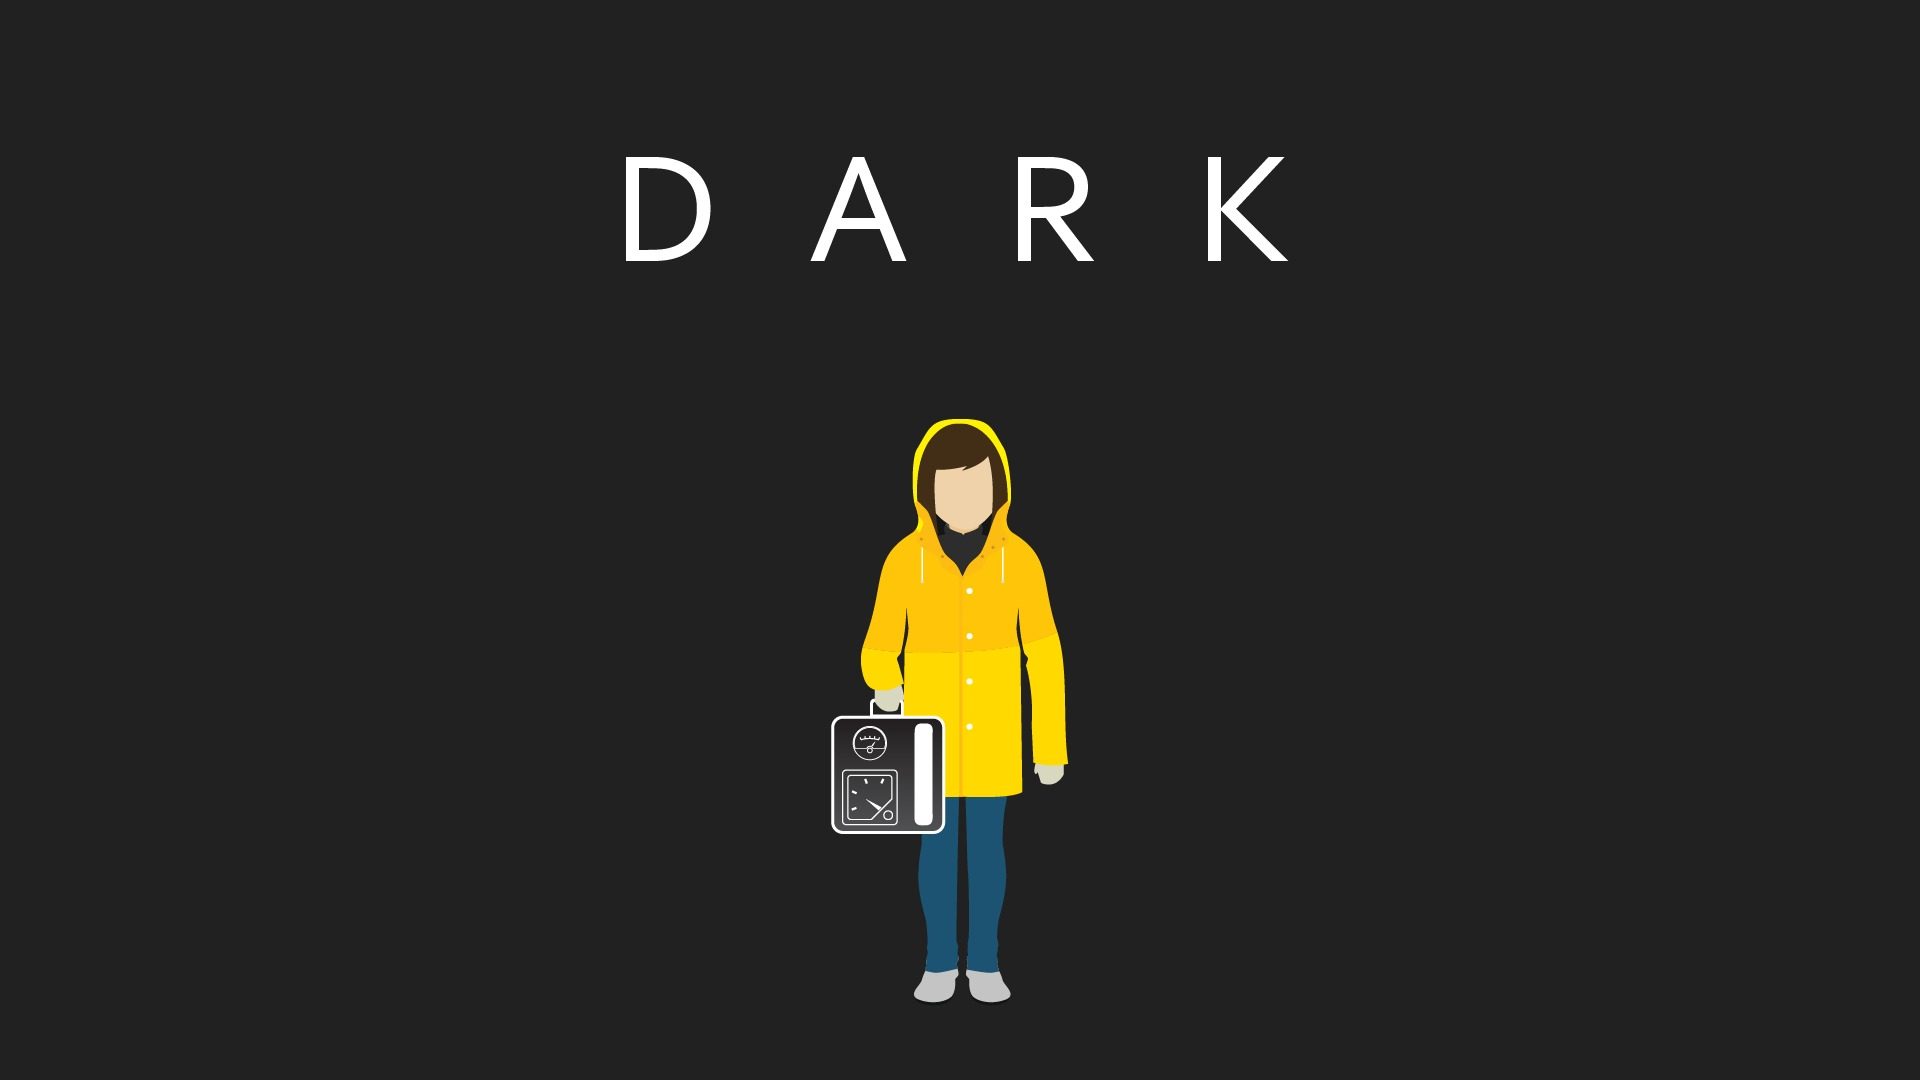 1080x1920 Dark Netflix Tv Show Minimal Poster Iphone 7 6s 6 Plus And Pixel Xl One Plus 3 3t 5 Wallpaper Hd Tv Series 4k Wallpapers Images Photos And Background